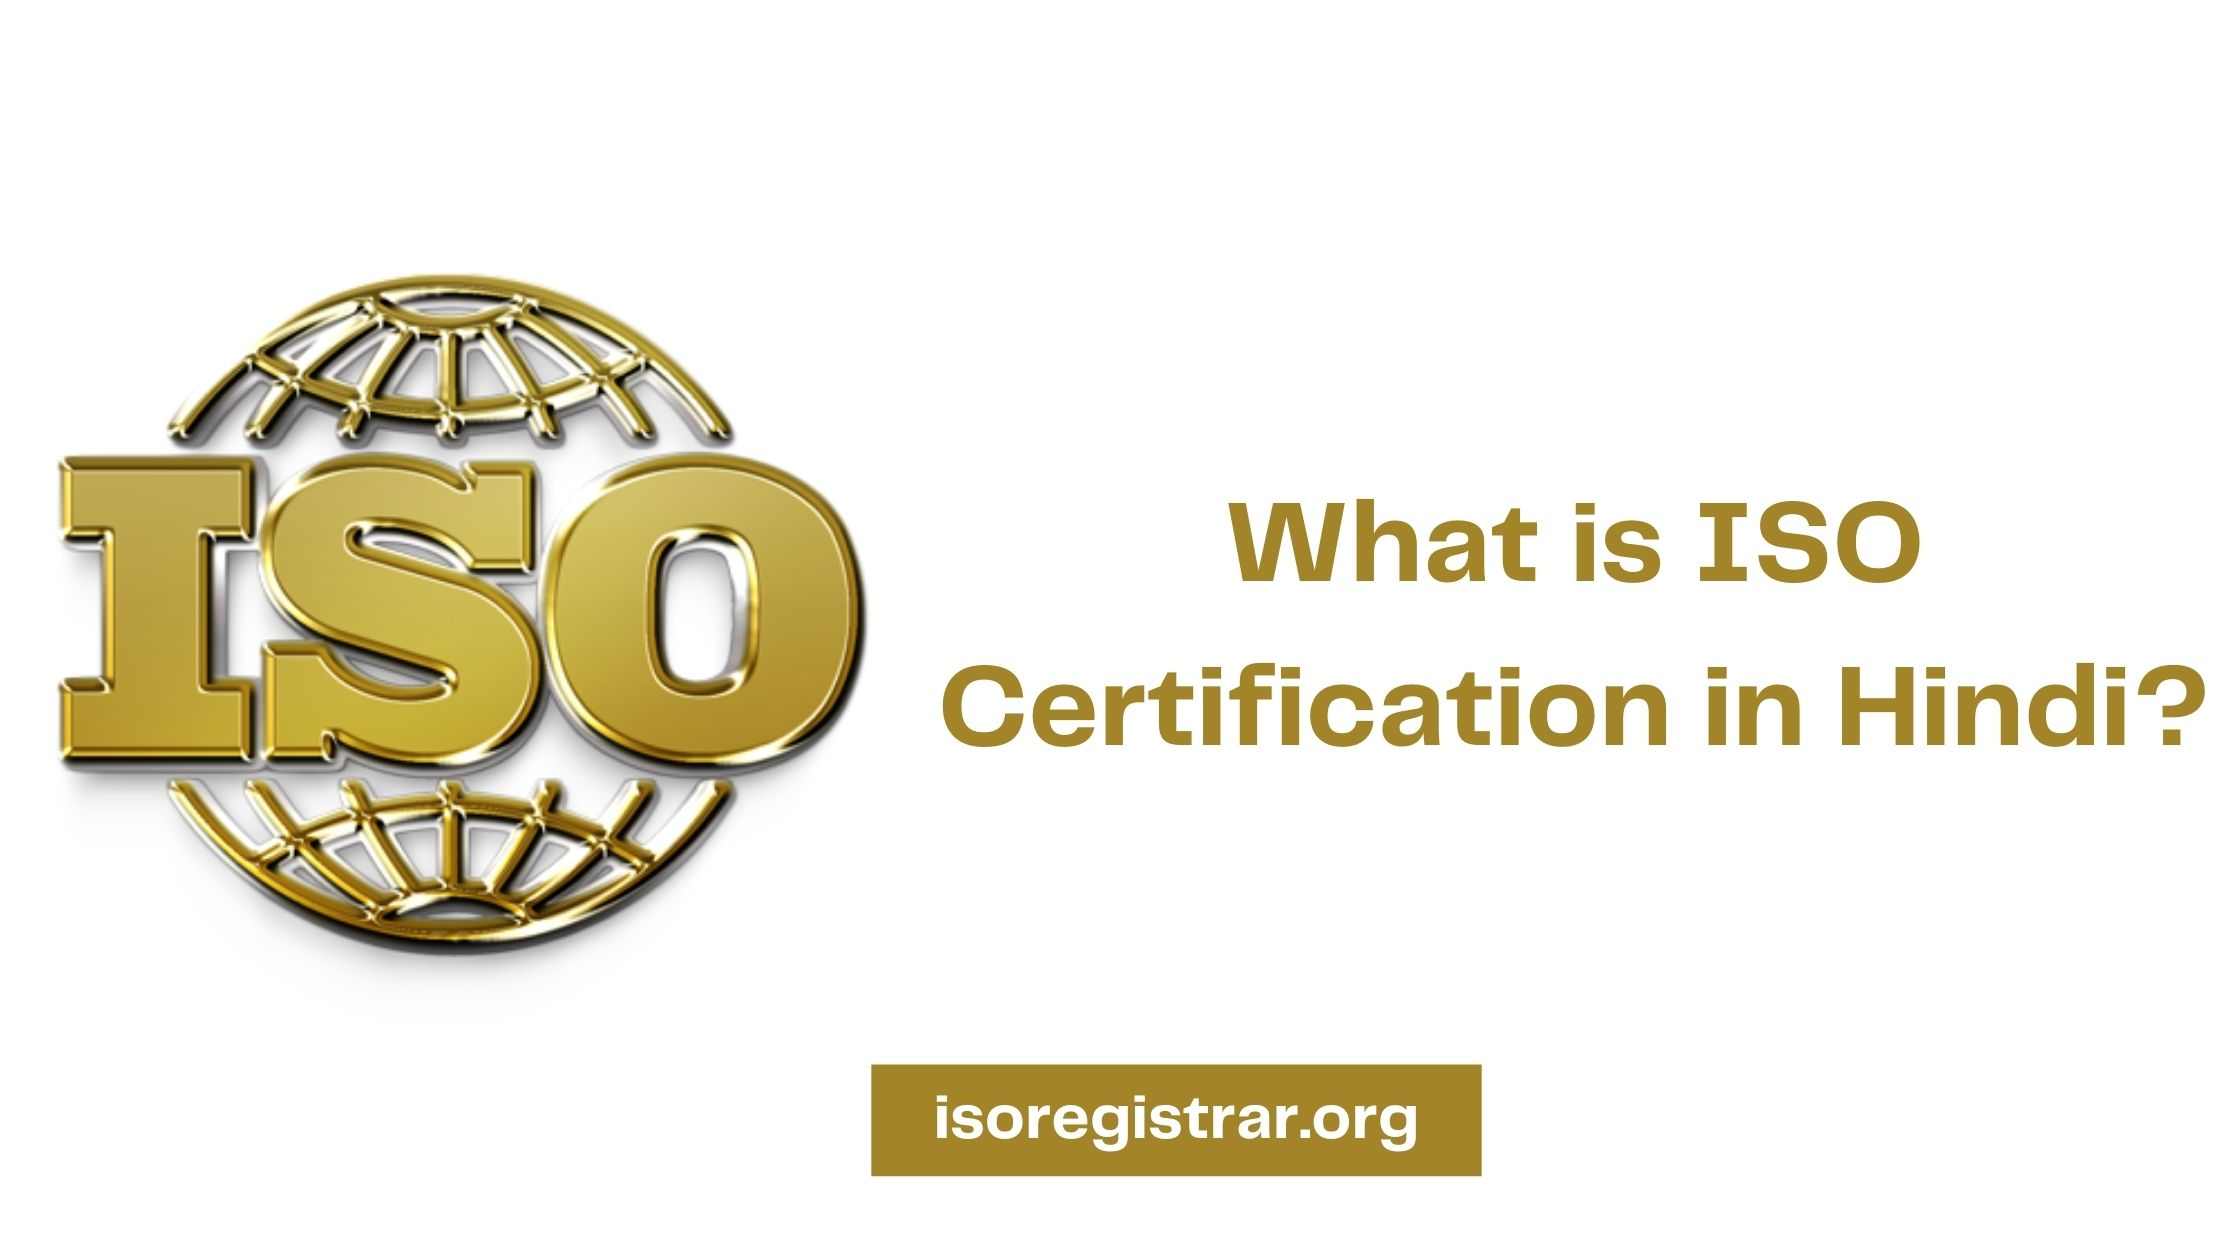 What is ISO Certification in Hindi?